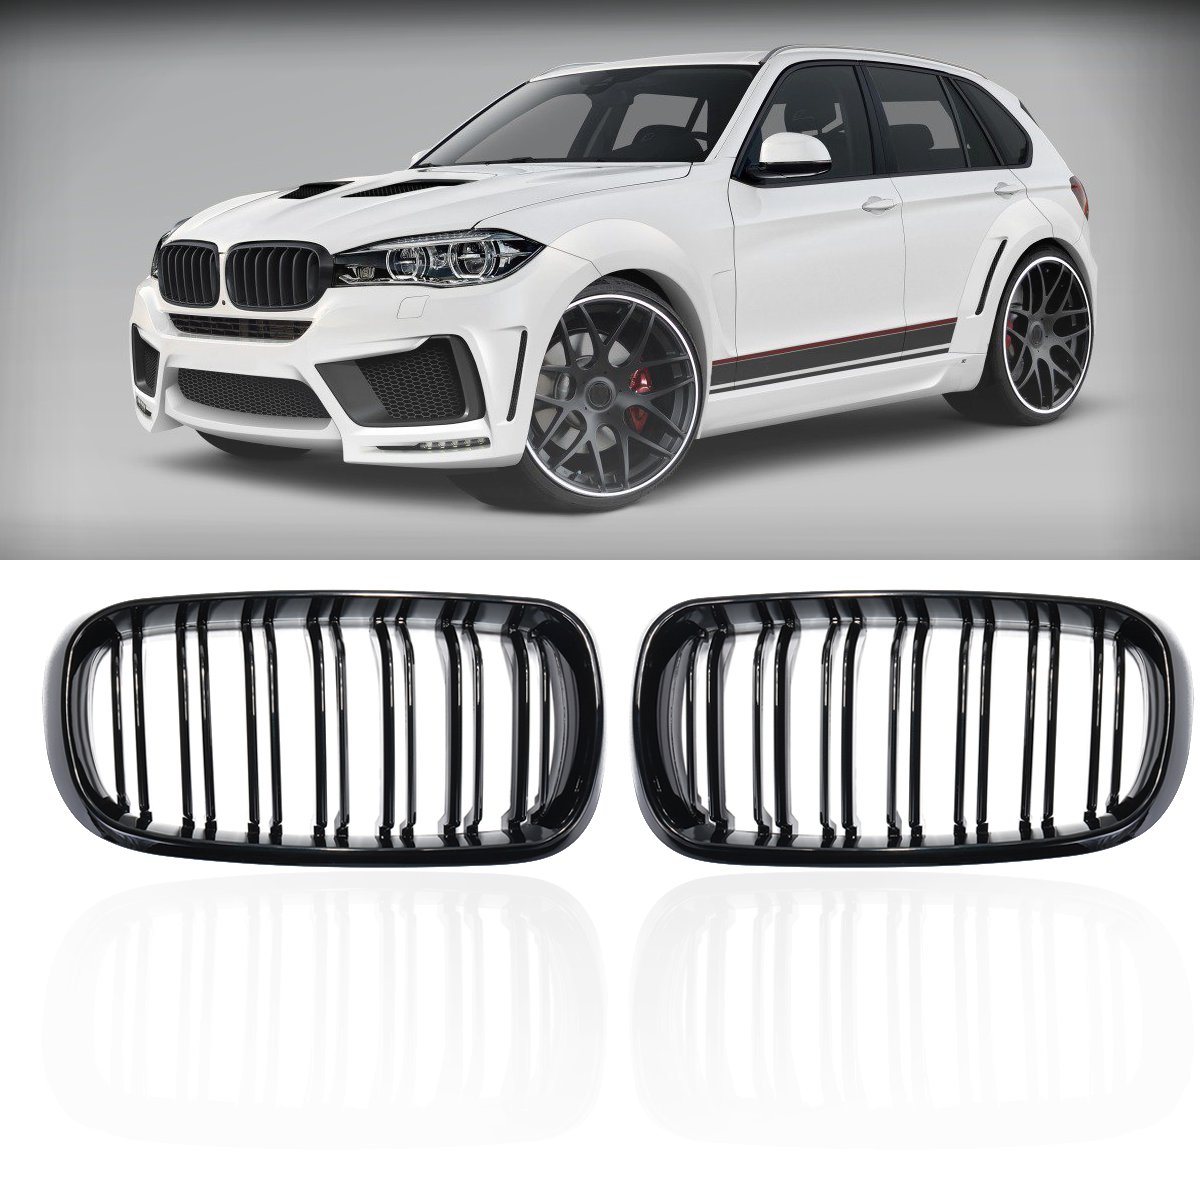 Pair New ABS Replacement Gloss Black Double Slat Front Grill Grille For BMW F15 F16 X5 X6 2014 2015 2016 2018 pair gloss matt black m color front kidney racing bumper grille grill for bmw x5 f15 x6 f16 x5m f85 x6m f86 2014 2015 2016 2017